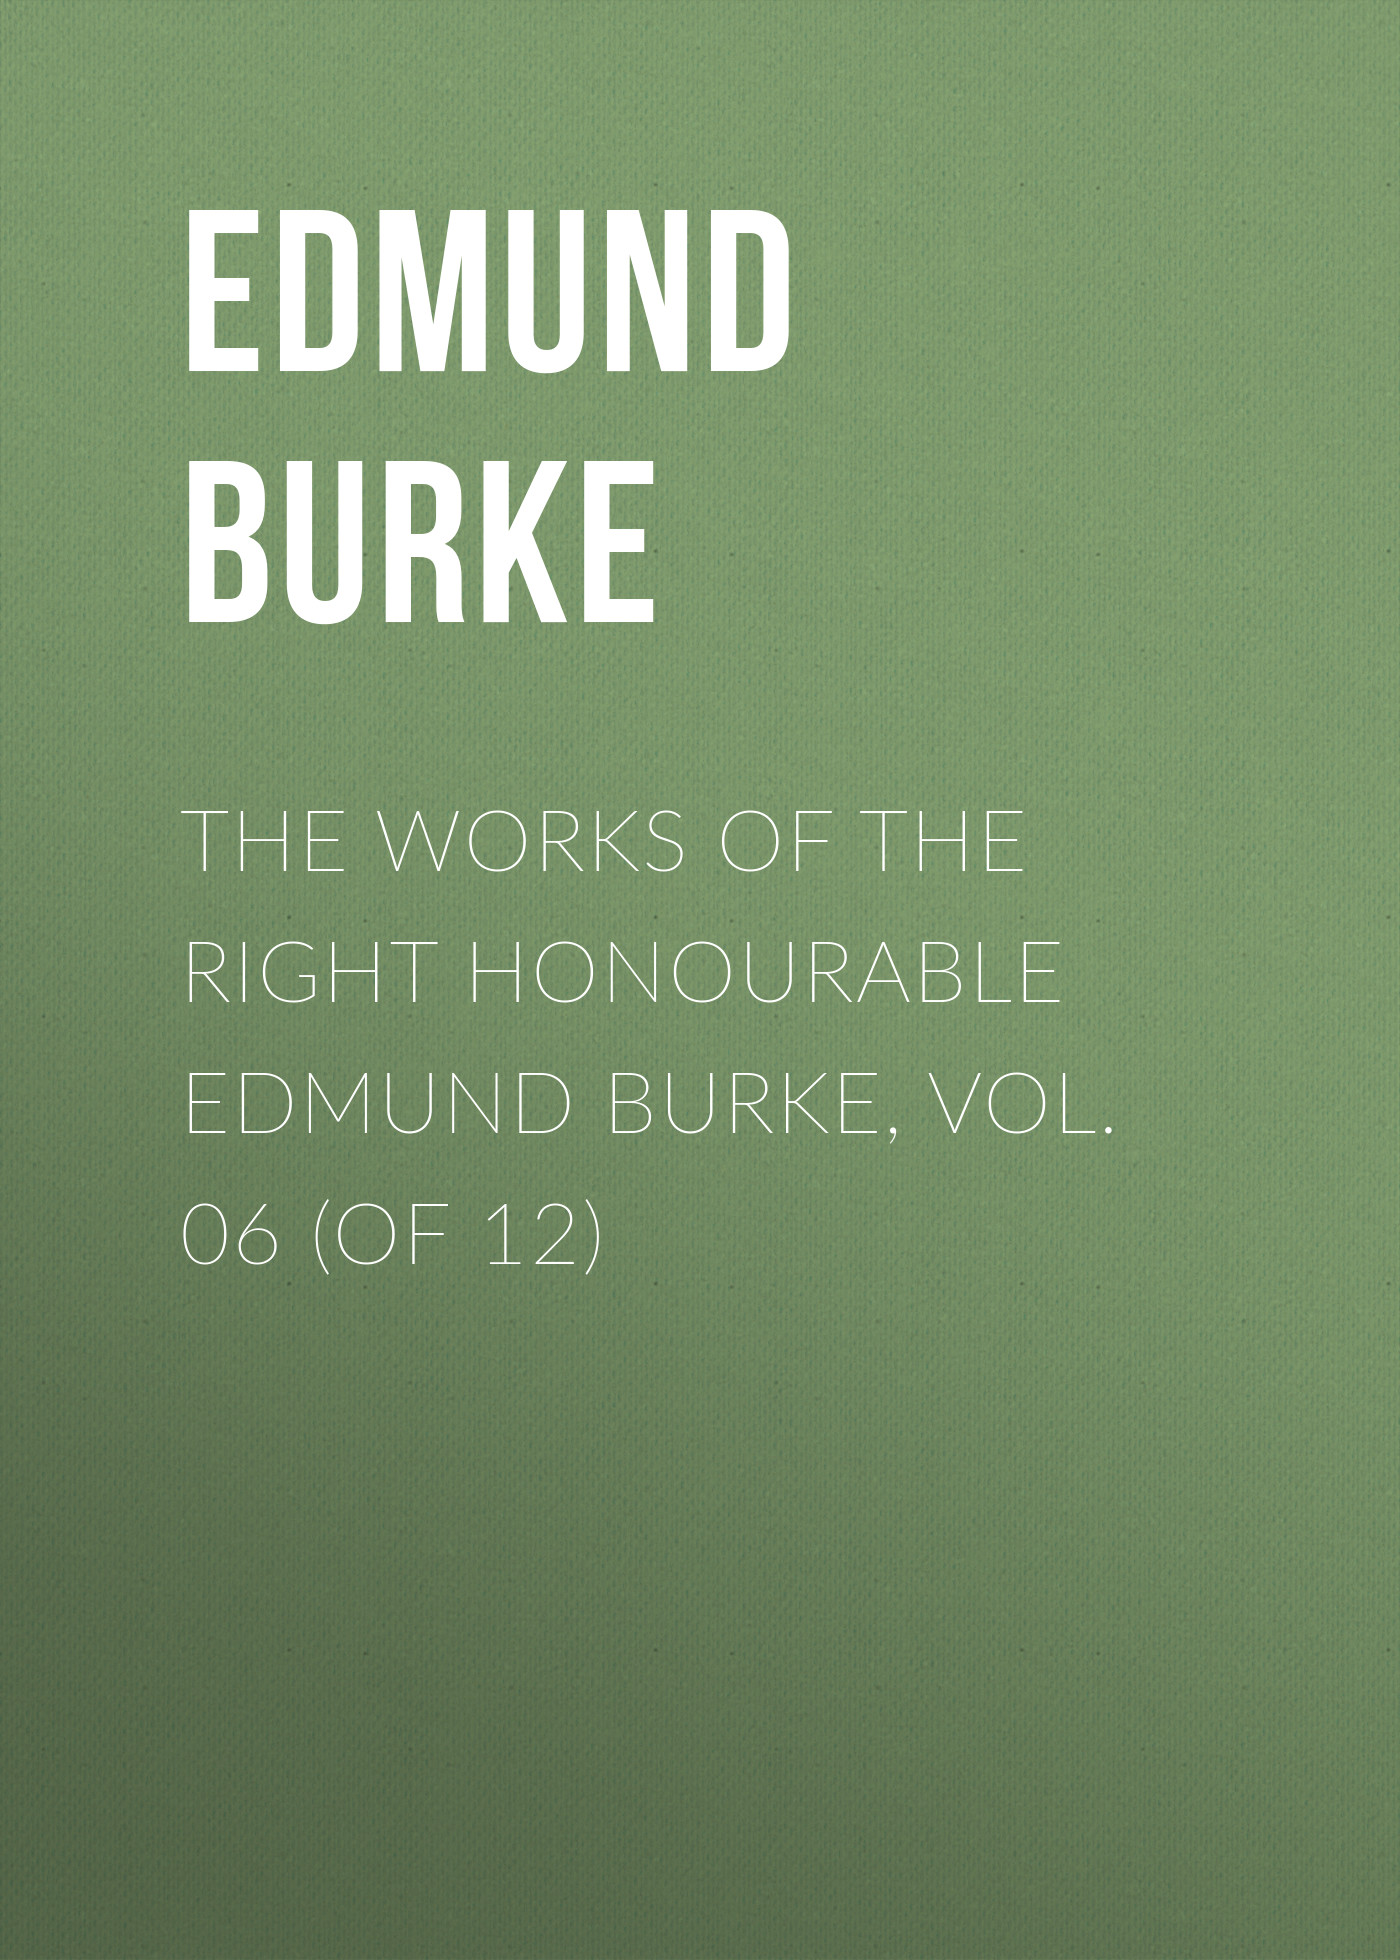 Edmund Burke The Works of the Right Honourable Edmund Burke, Vol. 06 (of 12) mark akenside the poetical works vol 1